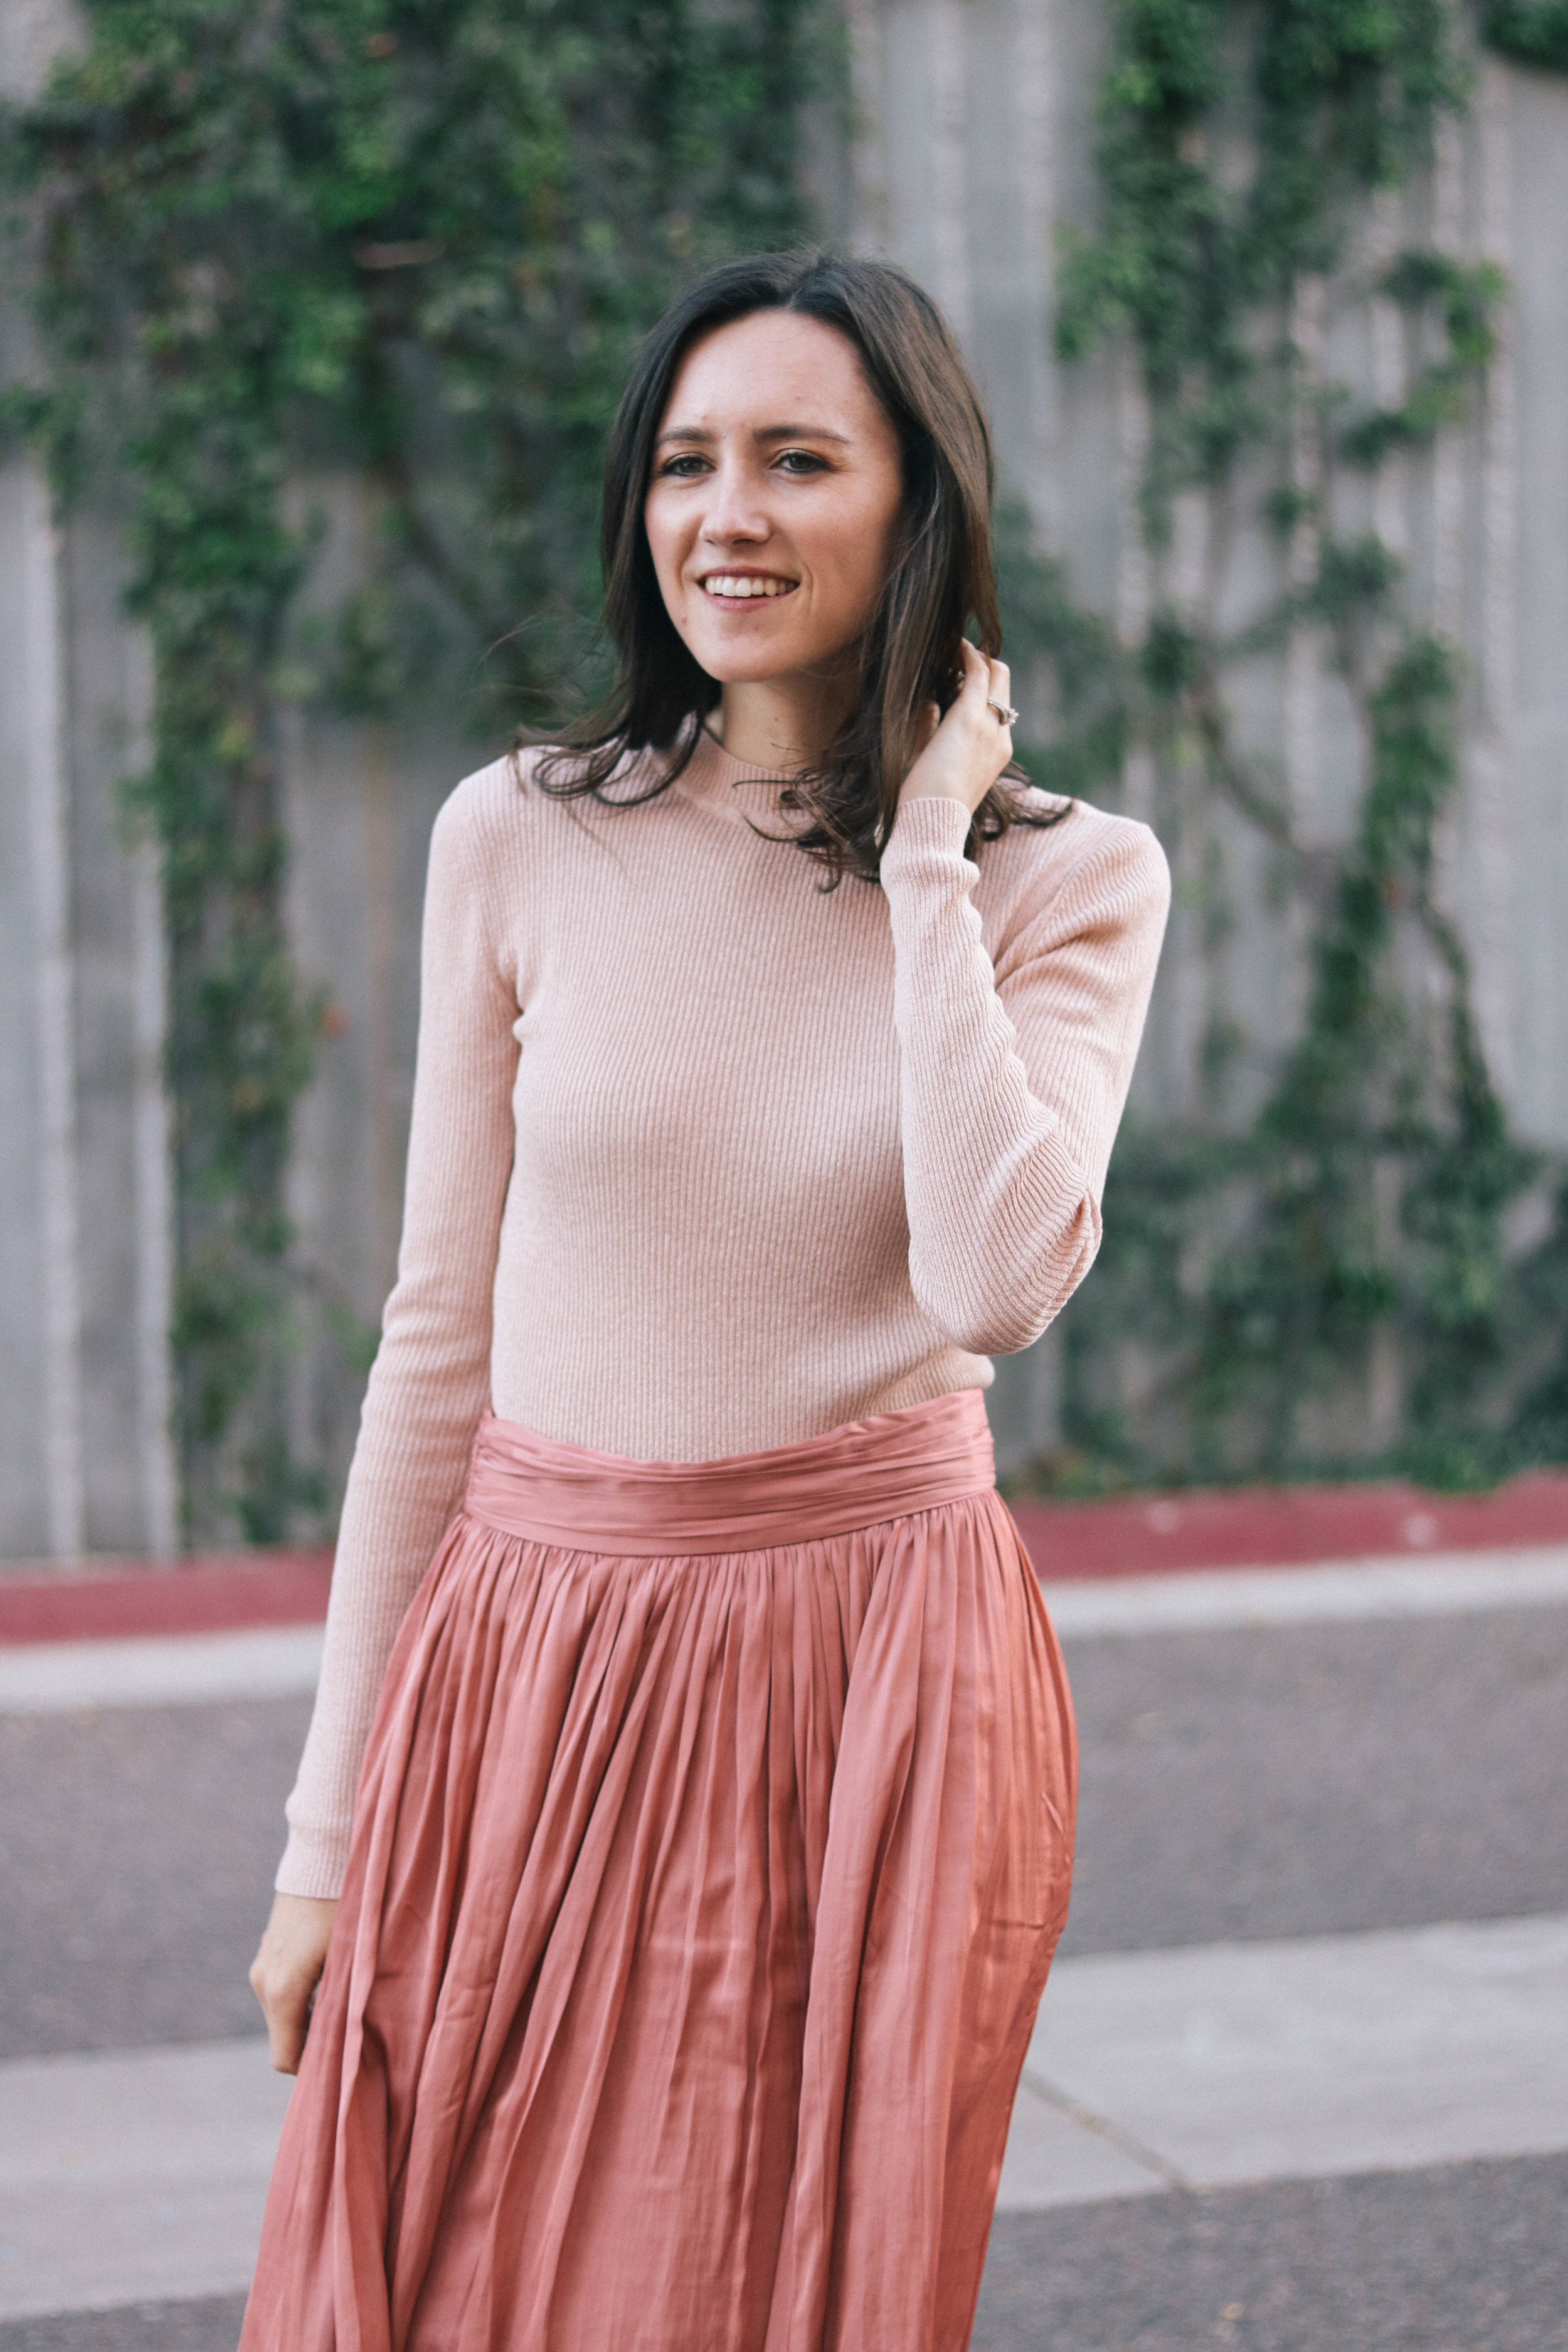 bb-pink-skirt-009 (1 of 1).jpg